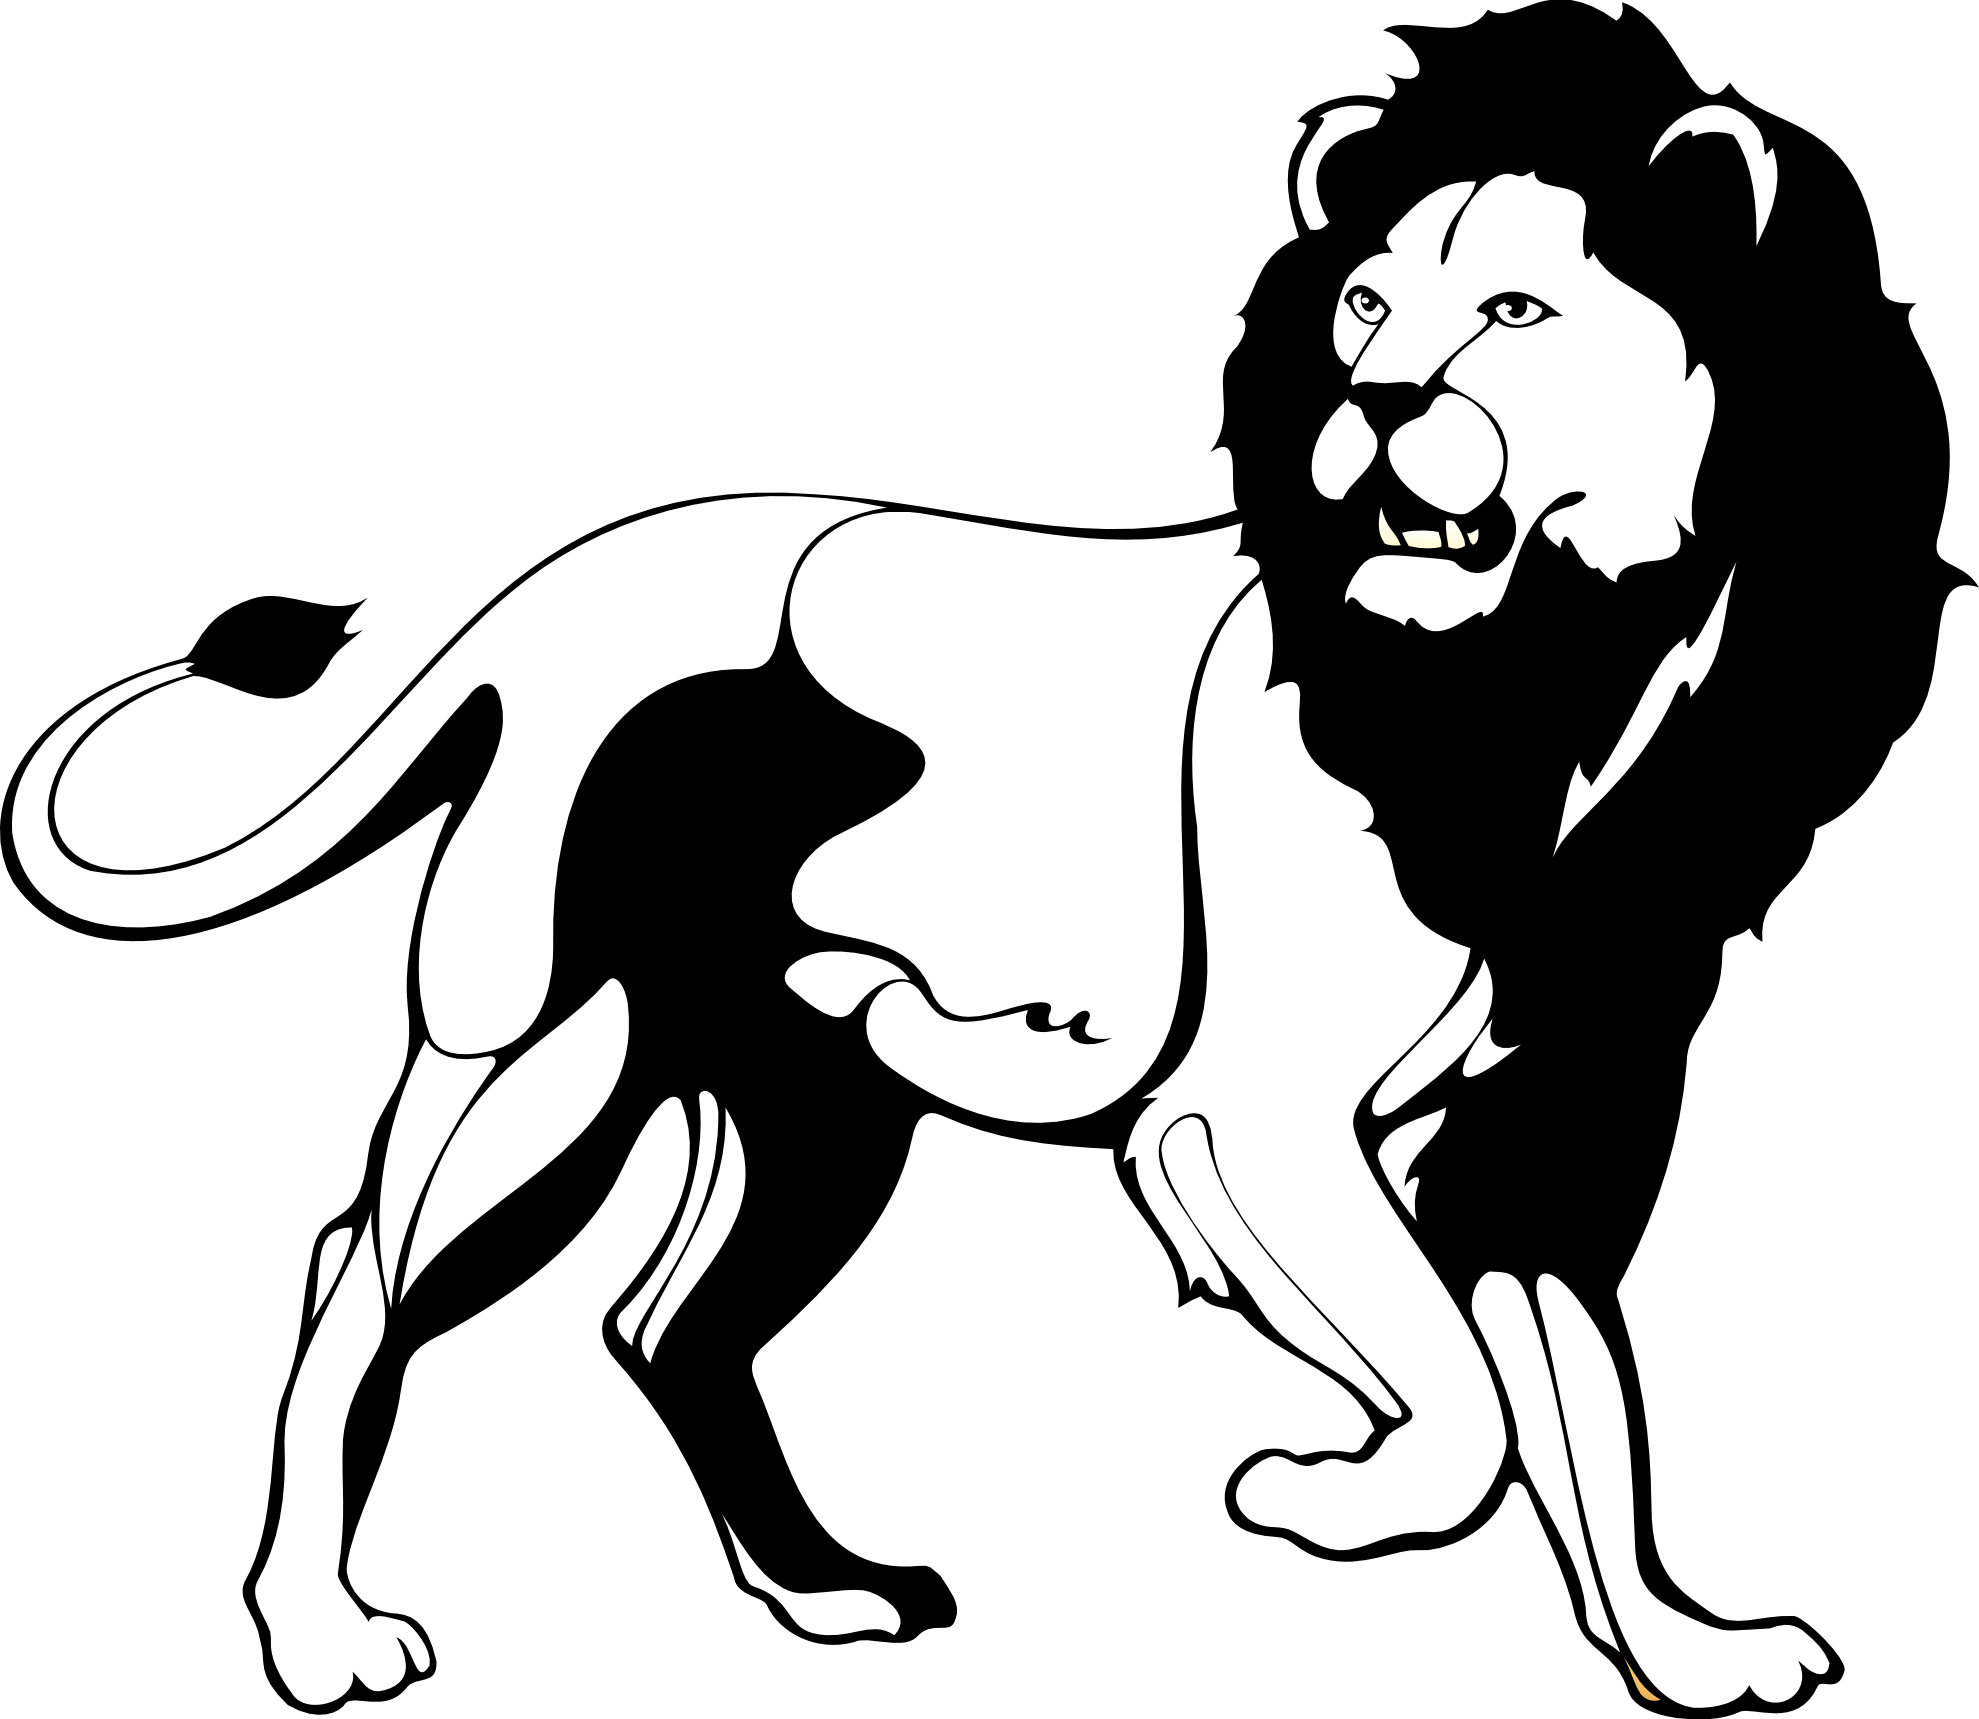 Drawing lions black and white. Collection of lion